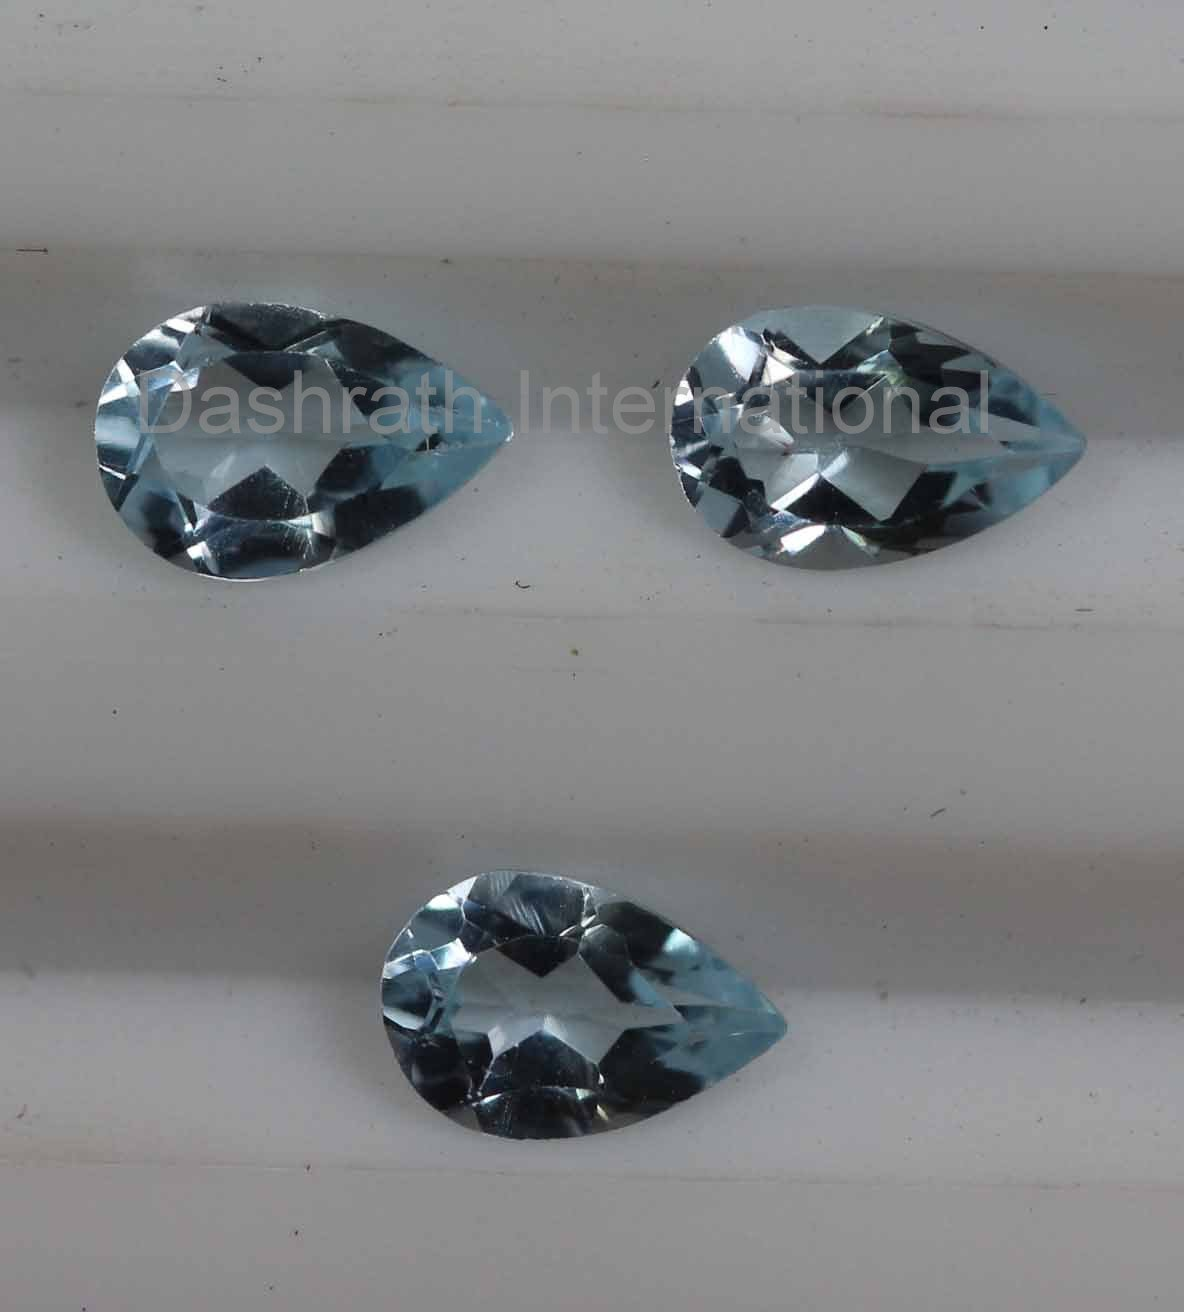 7x10mm  Natural Sky Blue Topaz Faceted Cut Pear 2 Piece (1 Pair )  Top Quality Loose Gemstone